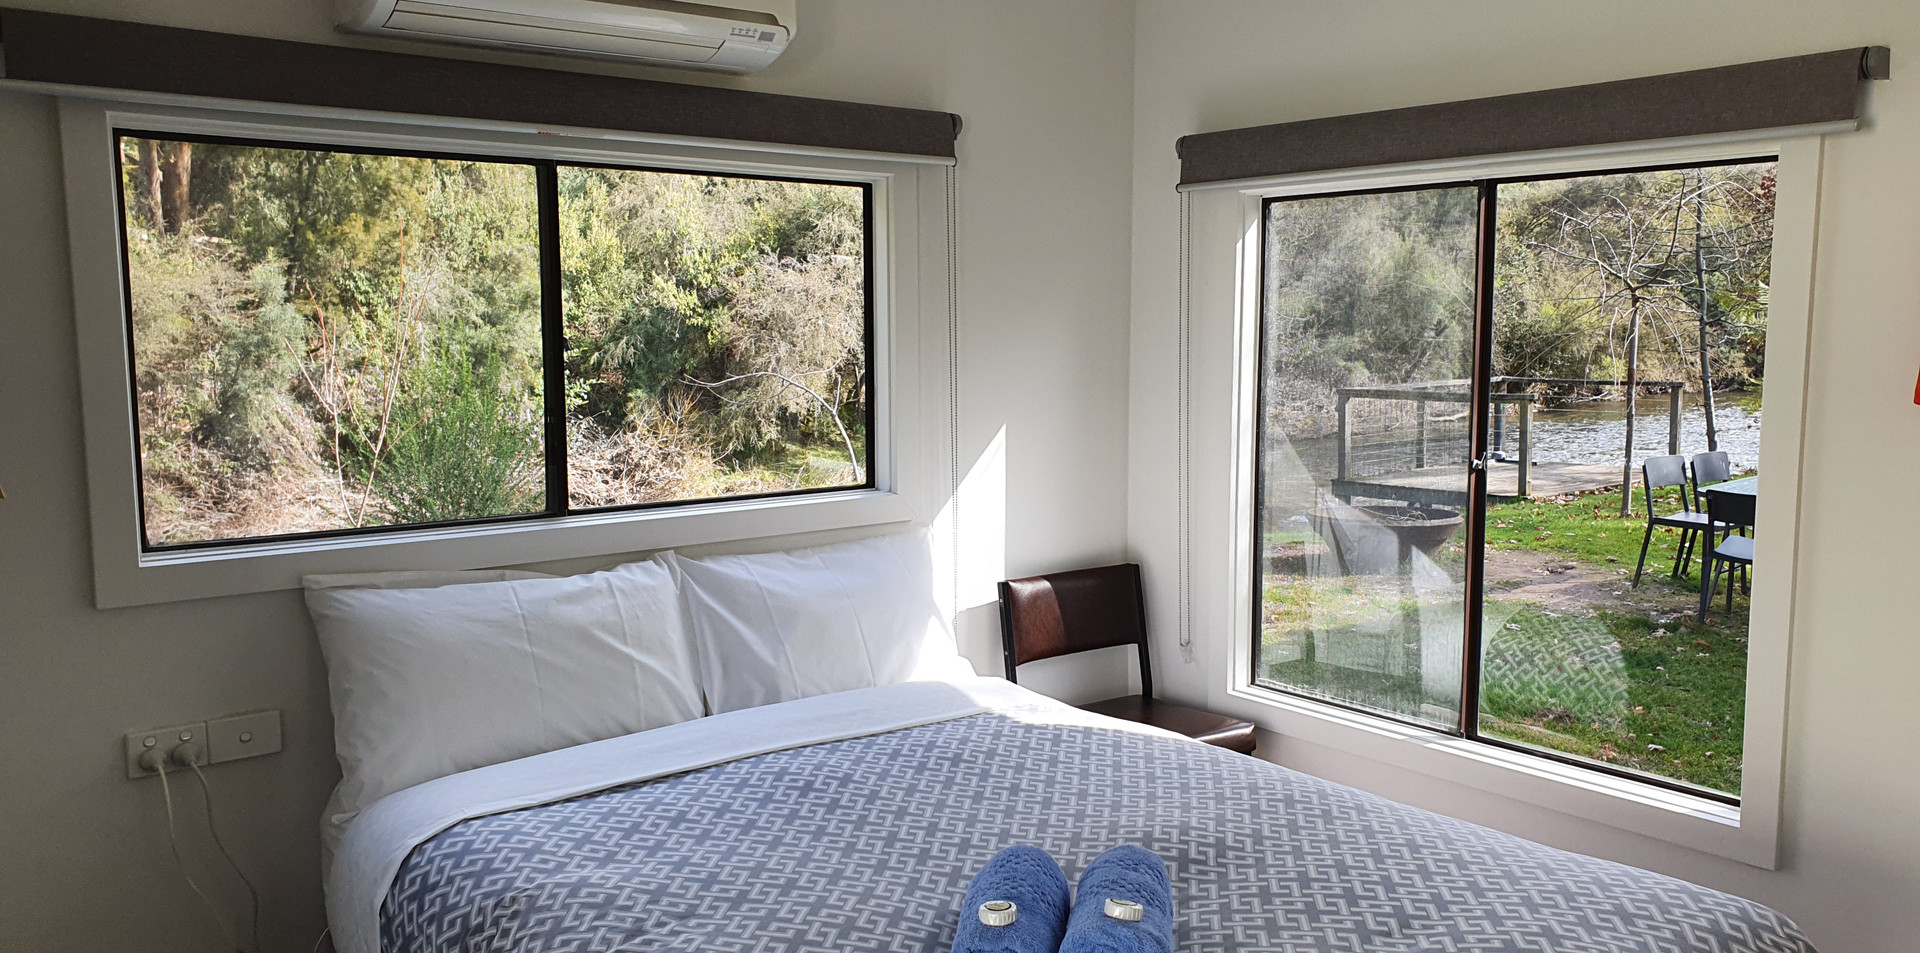 Bed standard riverfront cabin view